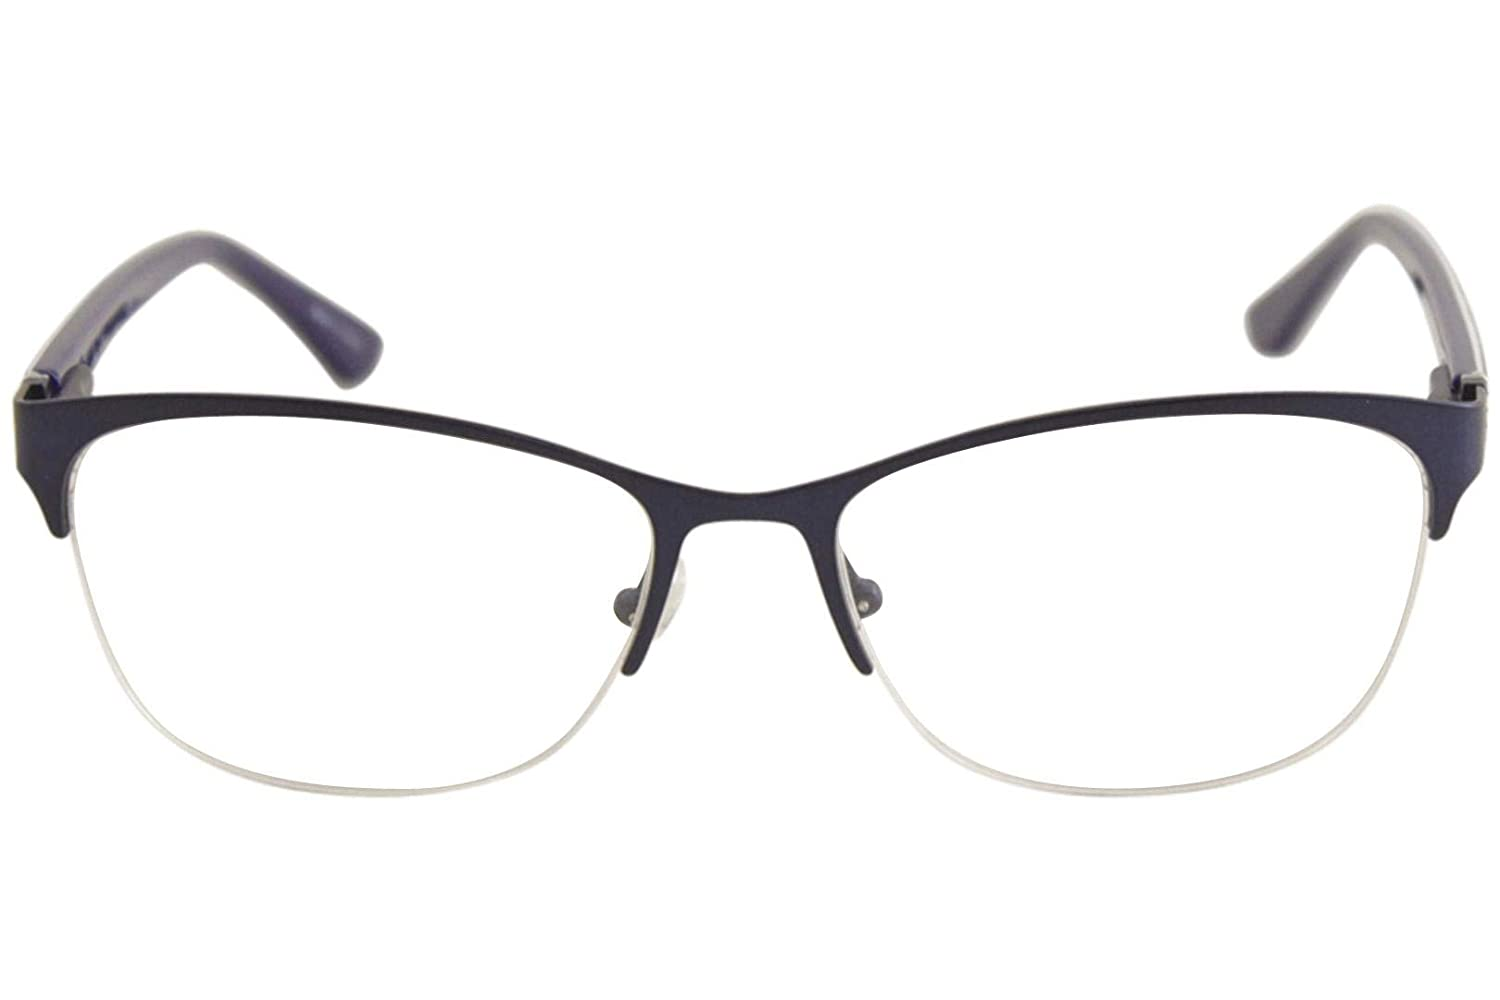 Eyeglasses Choice Rewards Preview Nicole Miller Catherine C01 Matte Navy